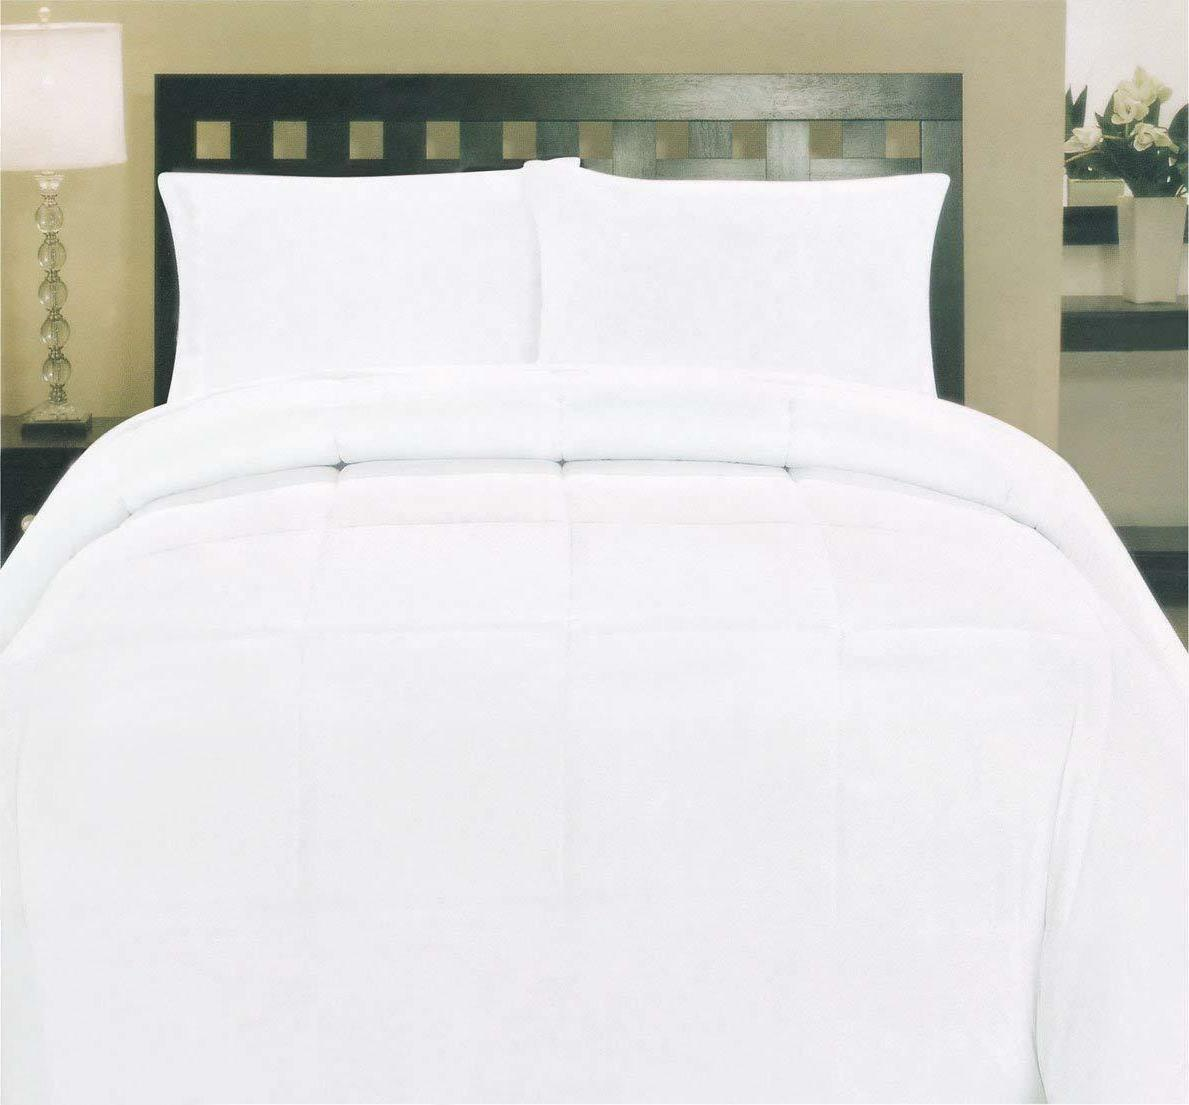 My Sweet Down Alternative Comforter, White